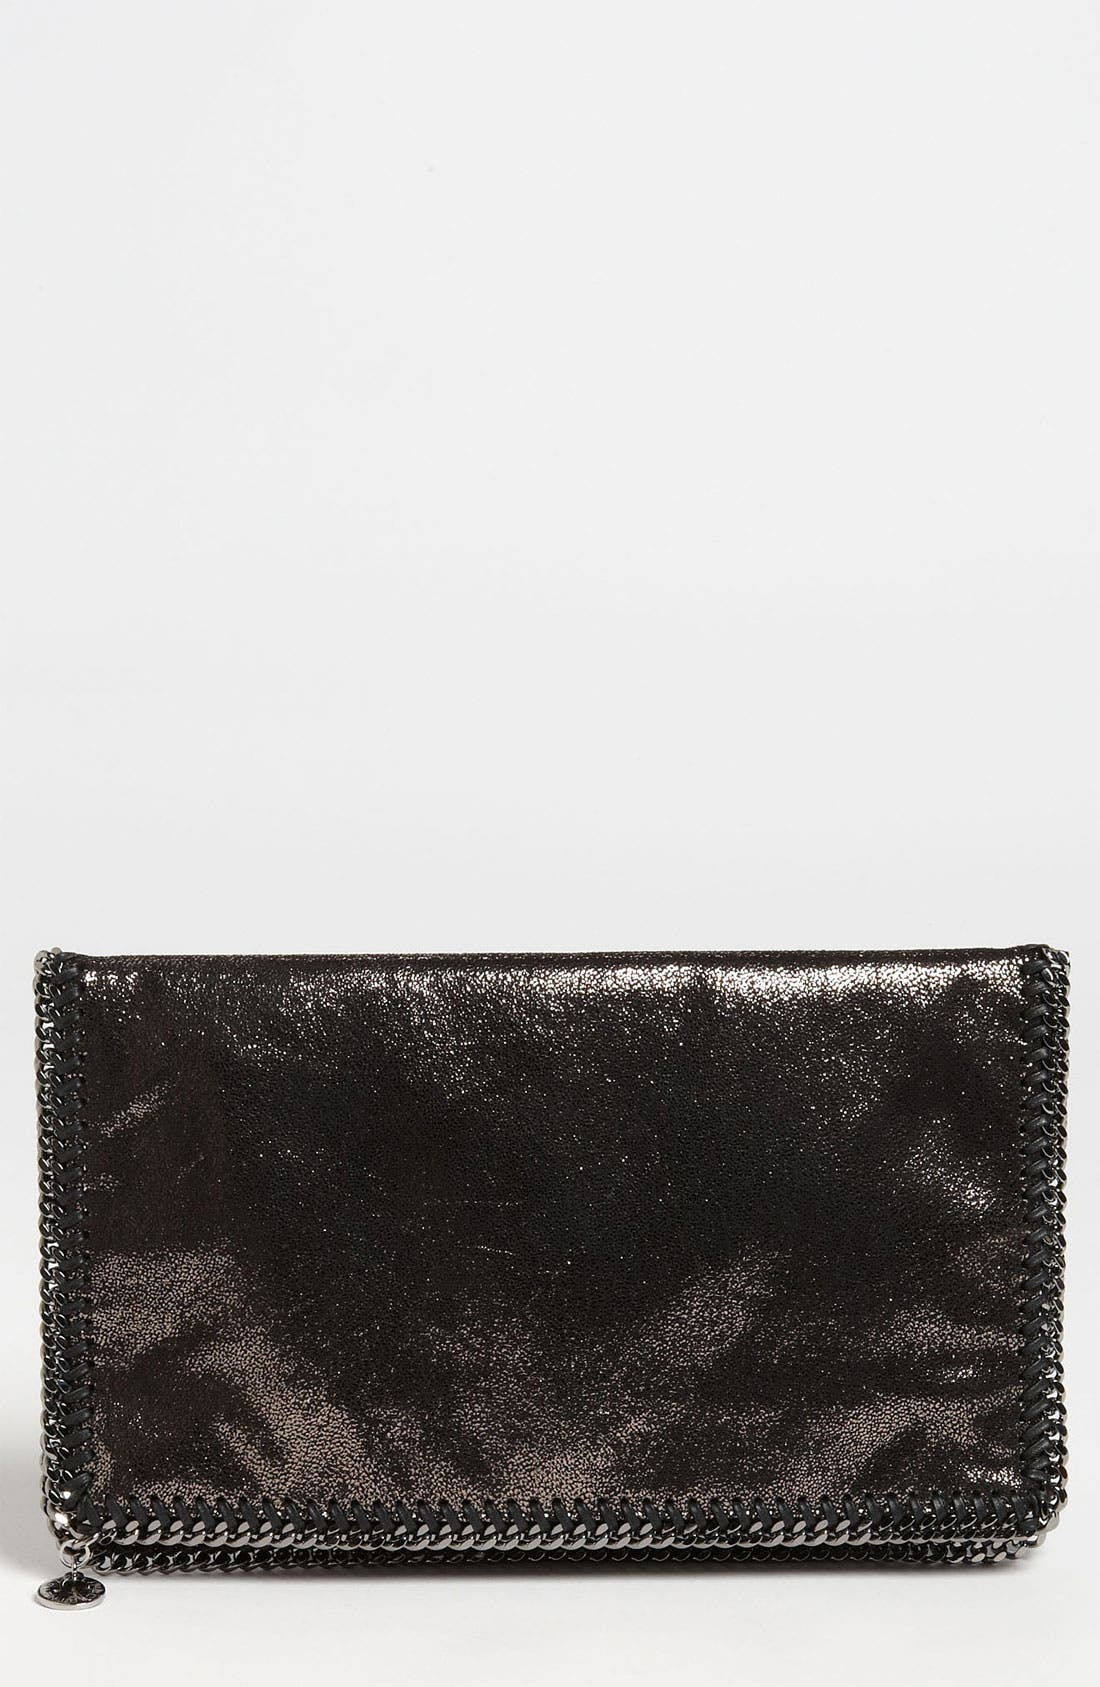 Main Image - Stella McCartney 'Falabella' Metallic Clutch